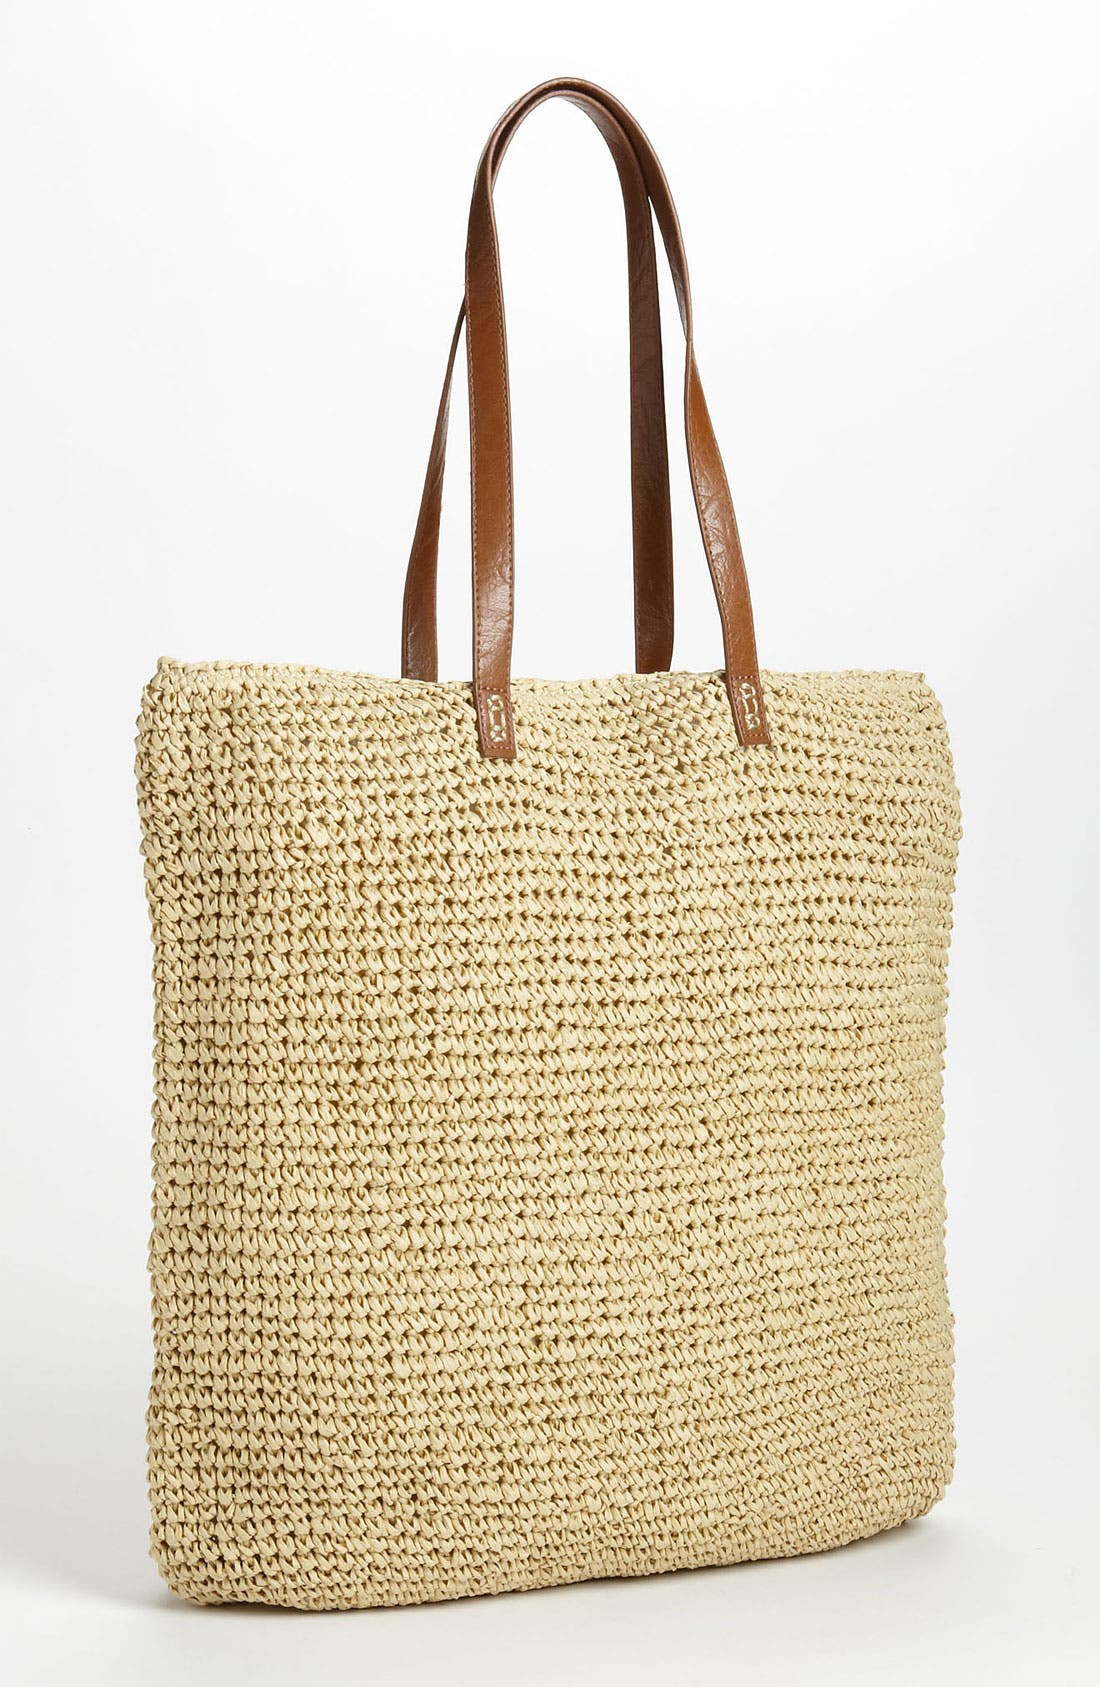 Alternate Image 1 Selected - Straw Studios 'North South' Straw Tote